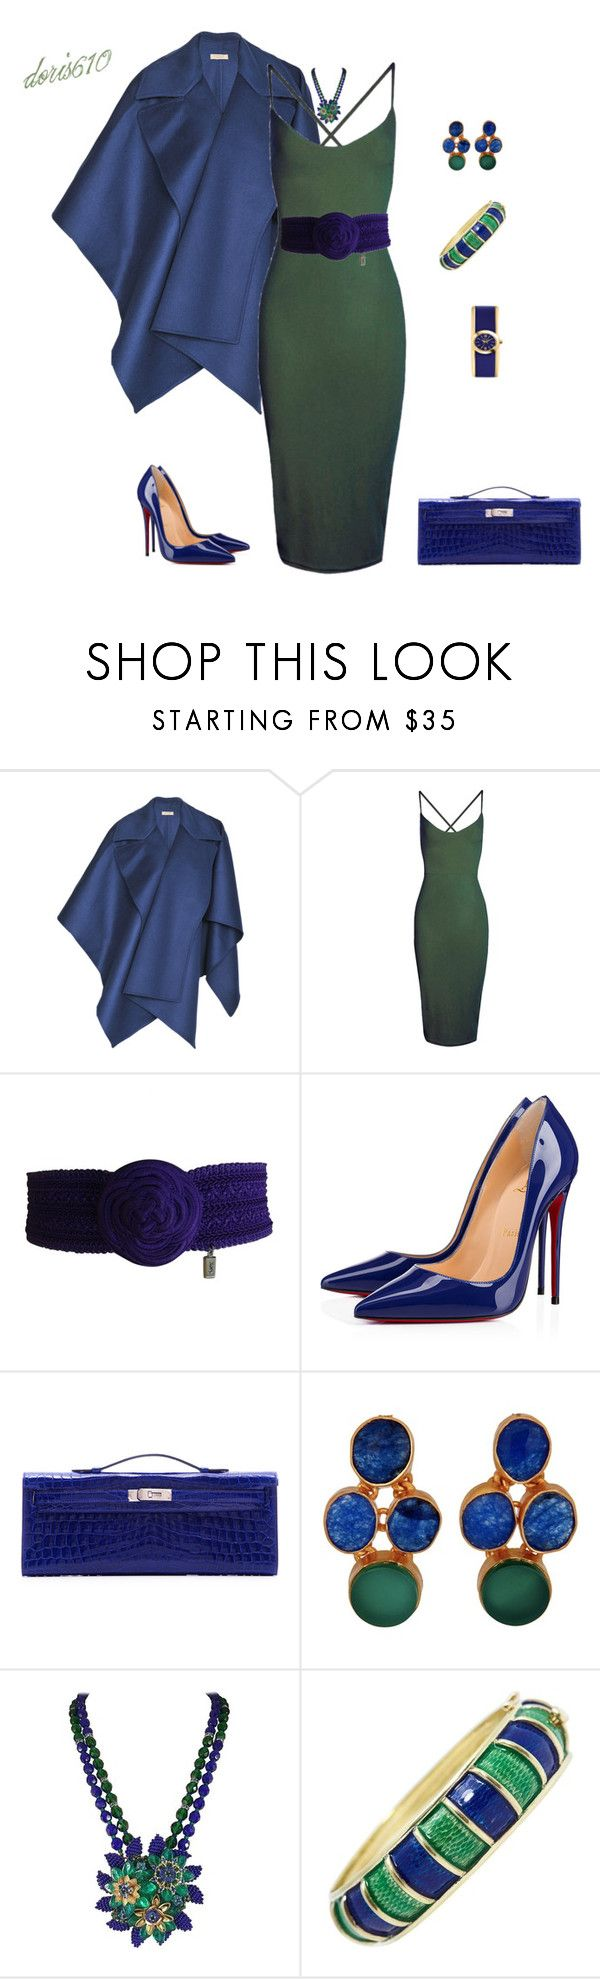 """""""Untitled #1832"""" by doris610 ❤ liked on Polyvore featuring Burberry, Boohoo, Yves Saint Laurent, Christian Louboutin, Hermès, Carousel Jewels, Cellino and Caravelle by Bulova"""